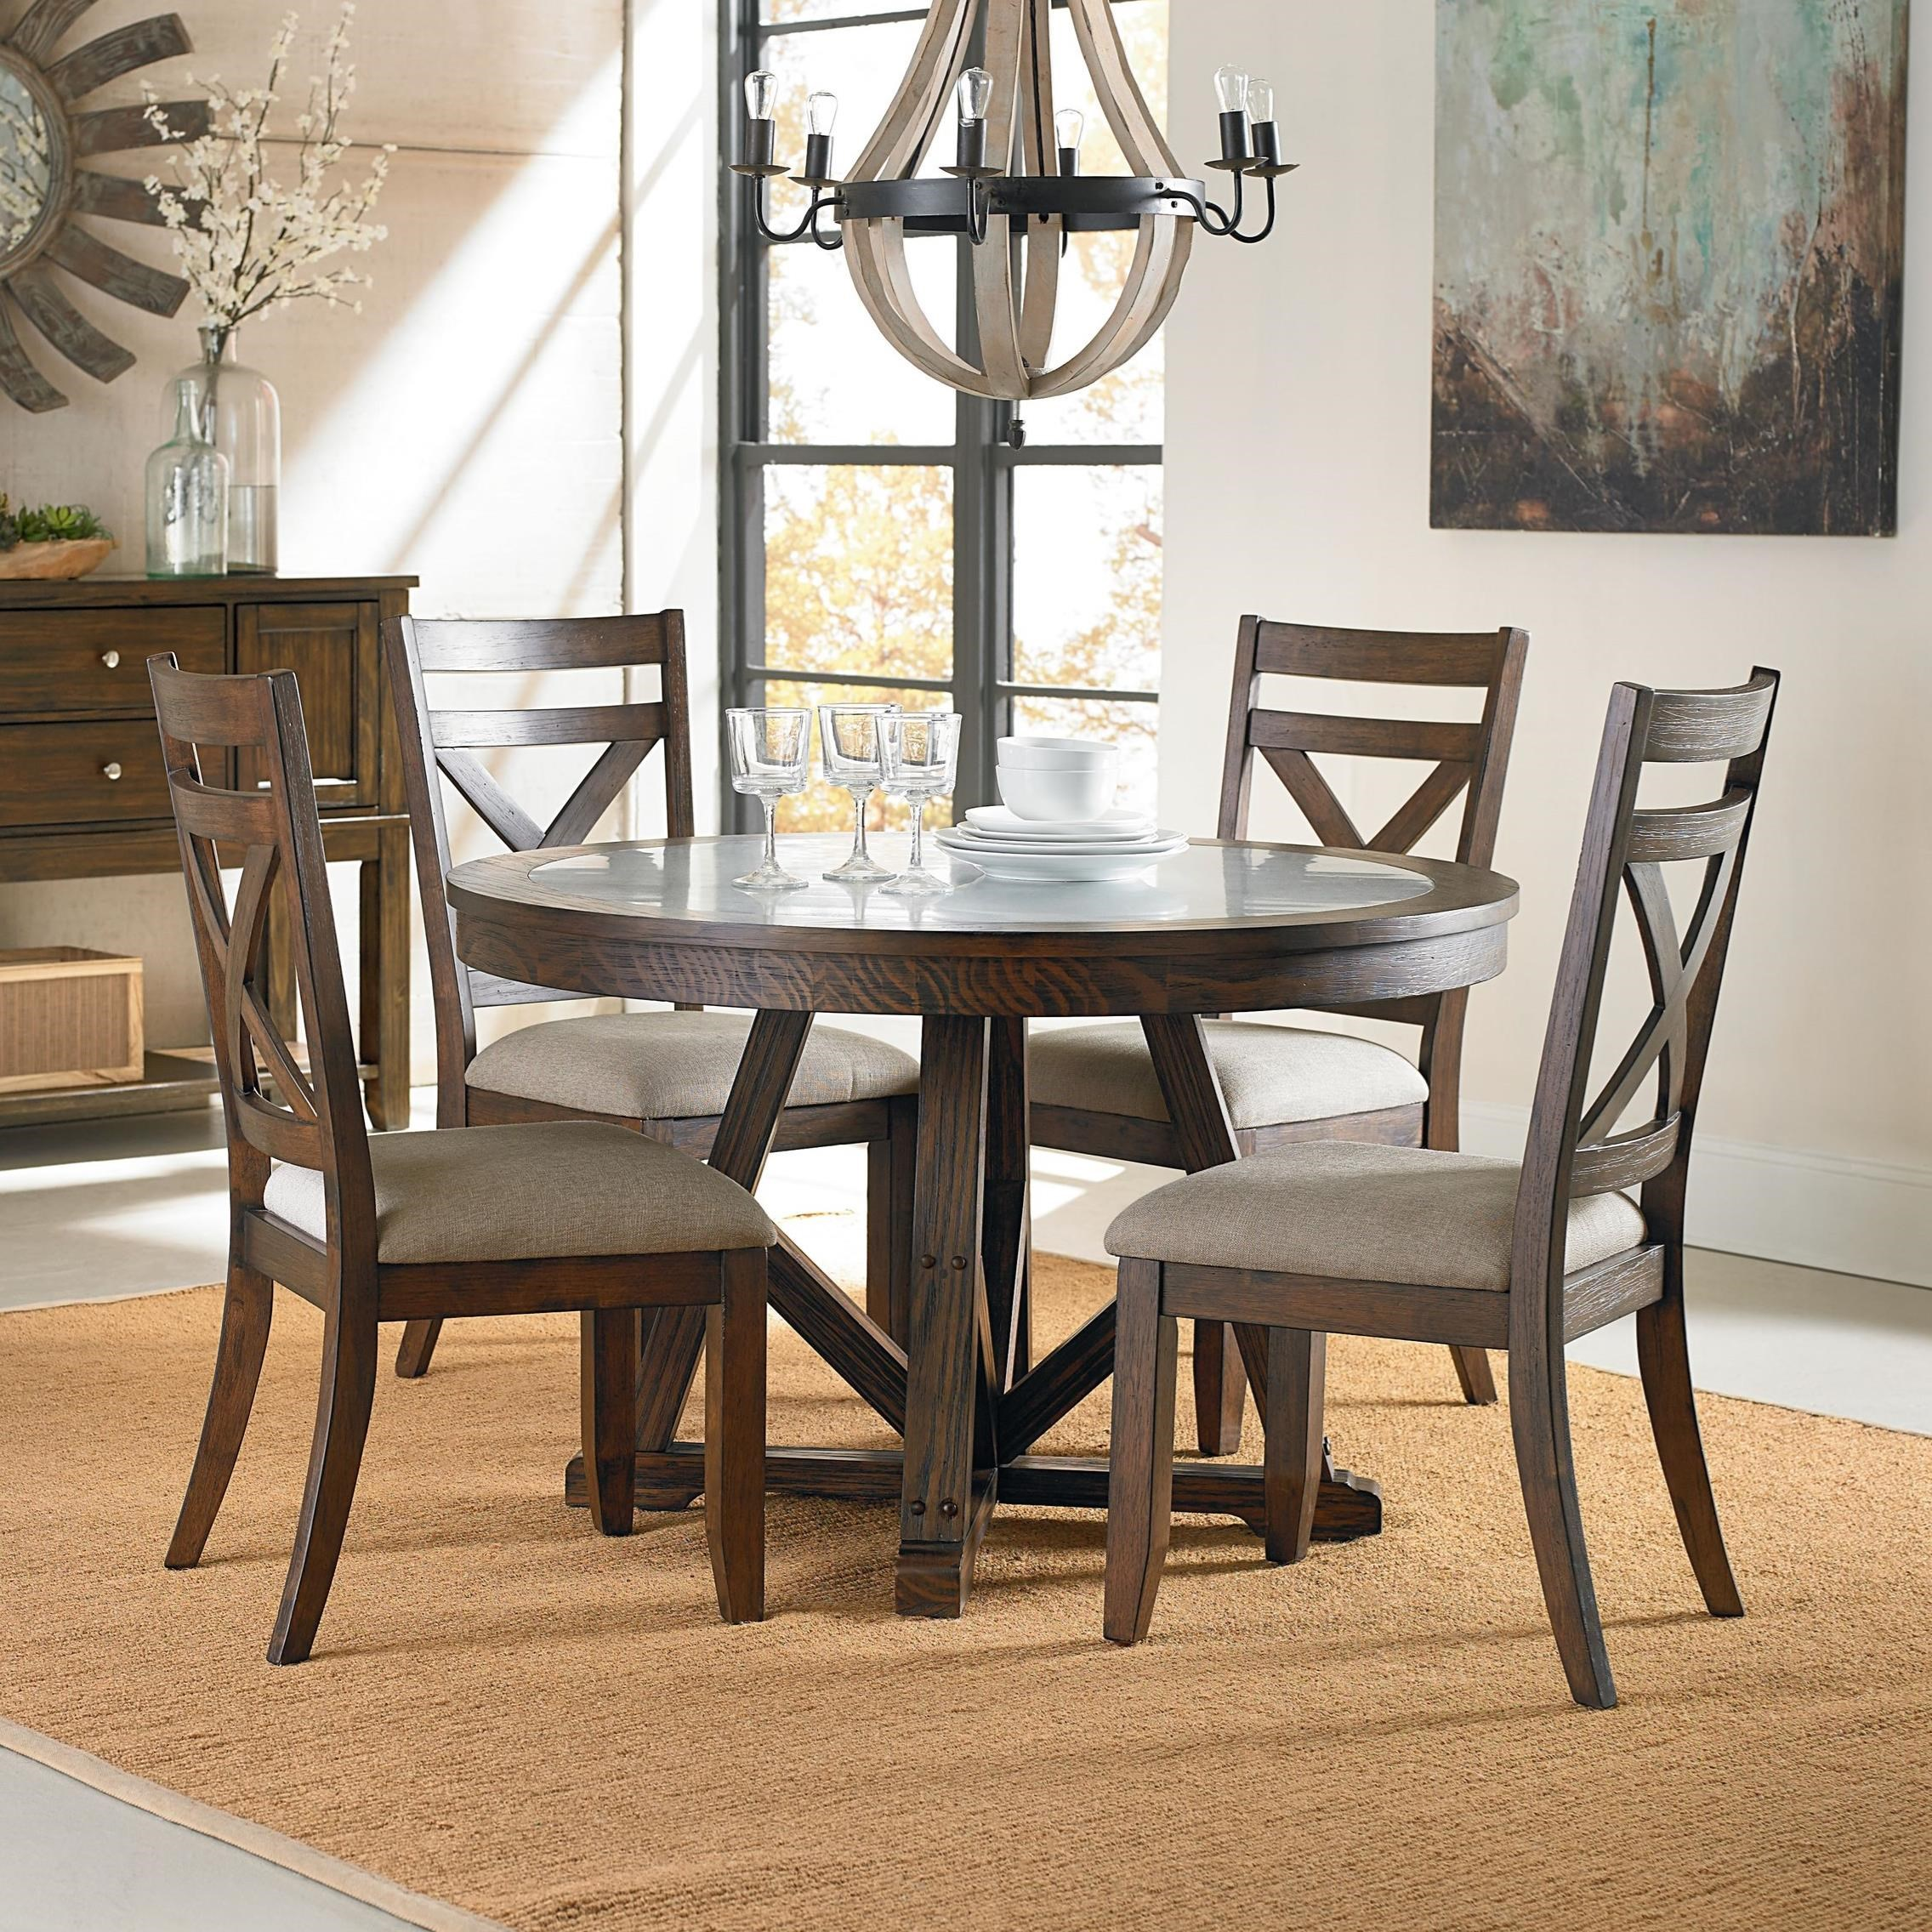 standard furniture carter rustic table and chair set